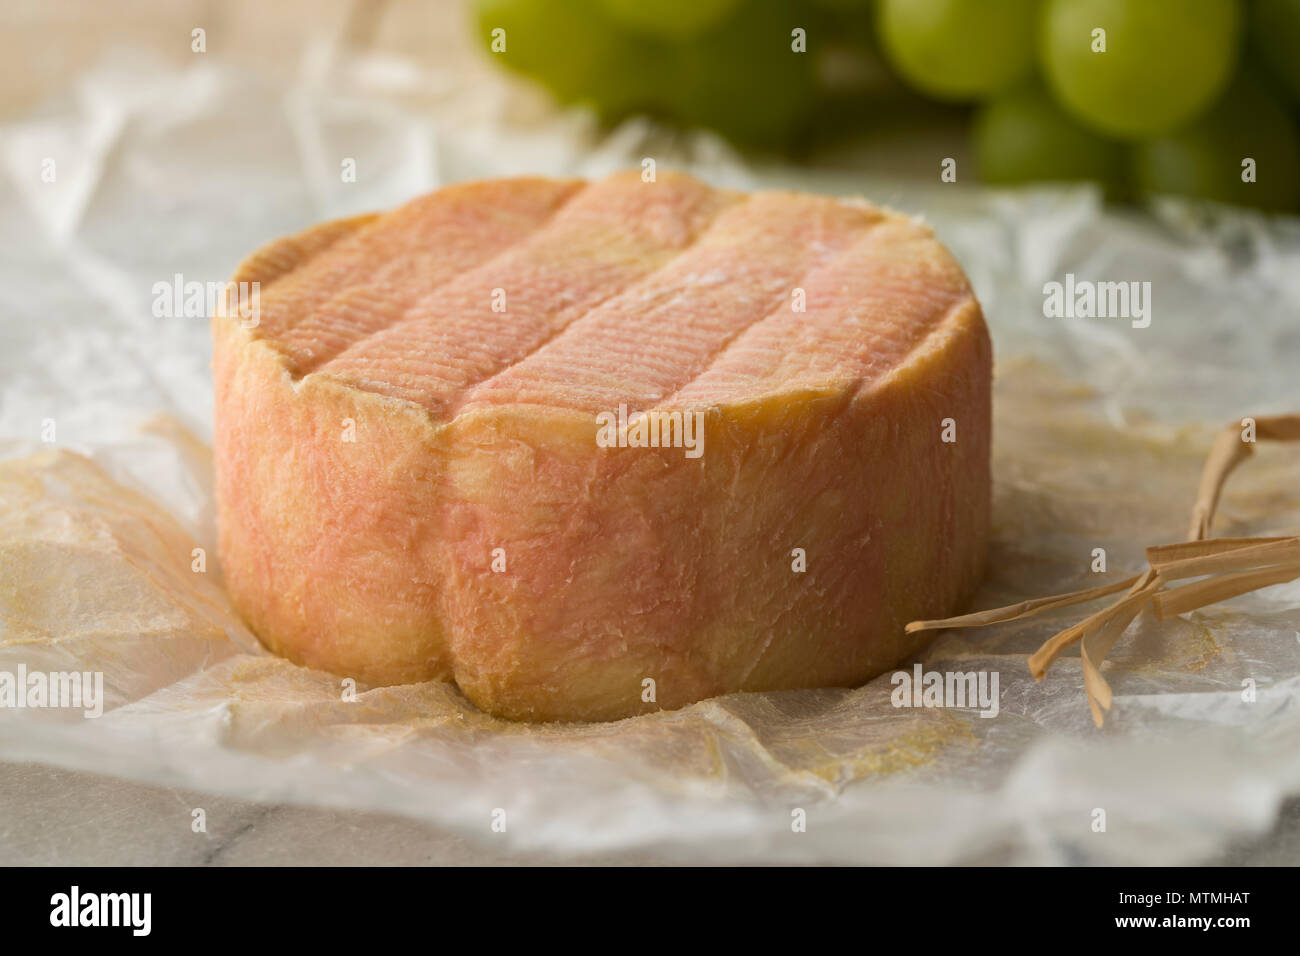 Unwrapped whole French Marc de Muscat cheese on paper - Stock Image